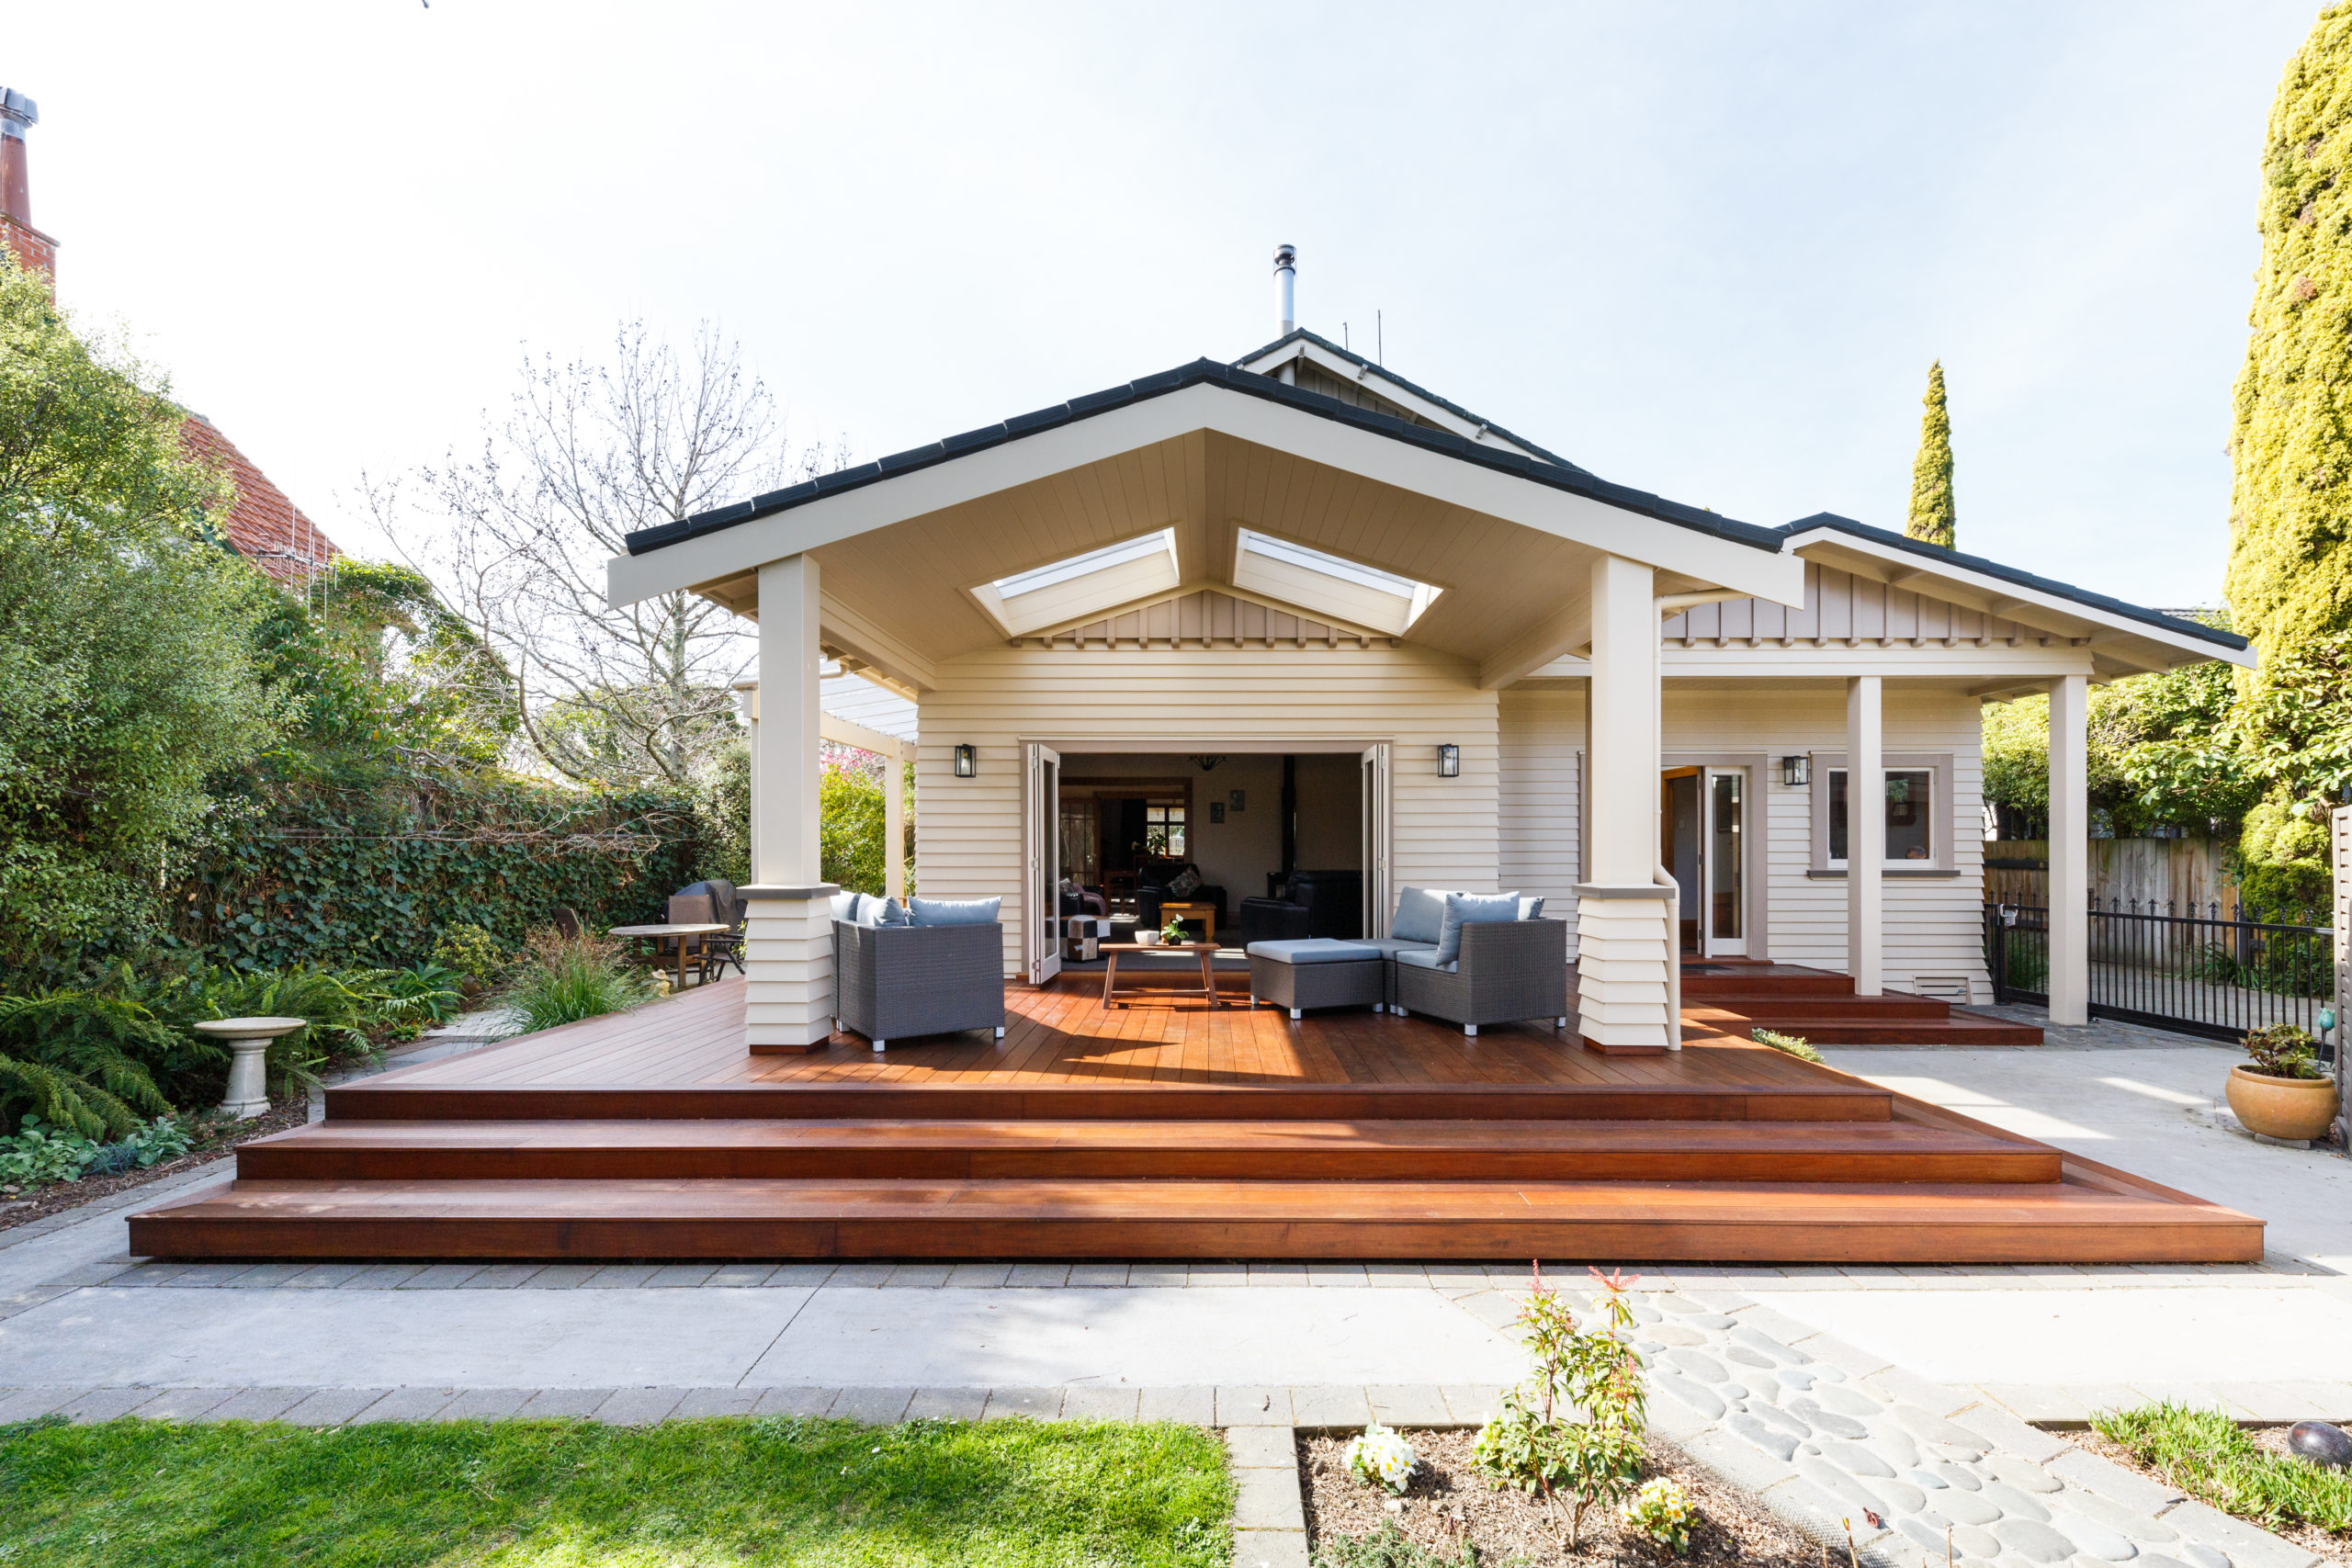 Home Extensions - Alteration Specialists